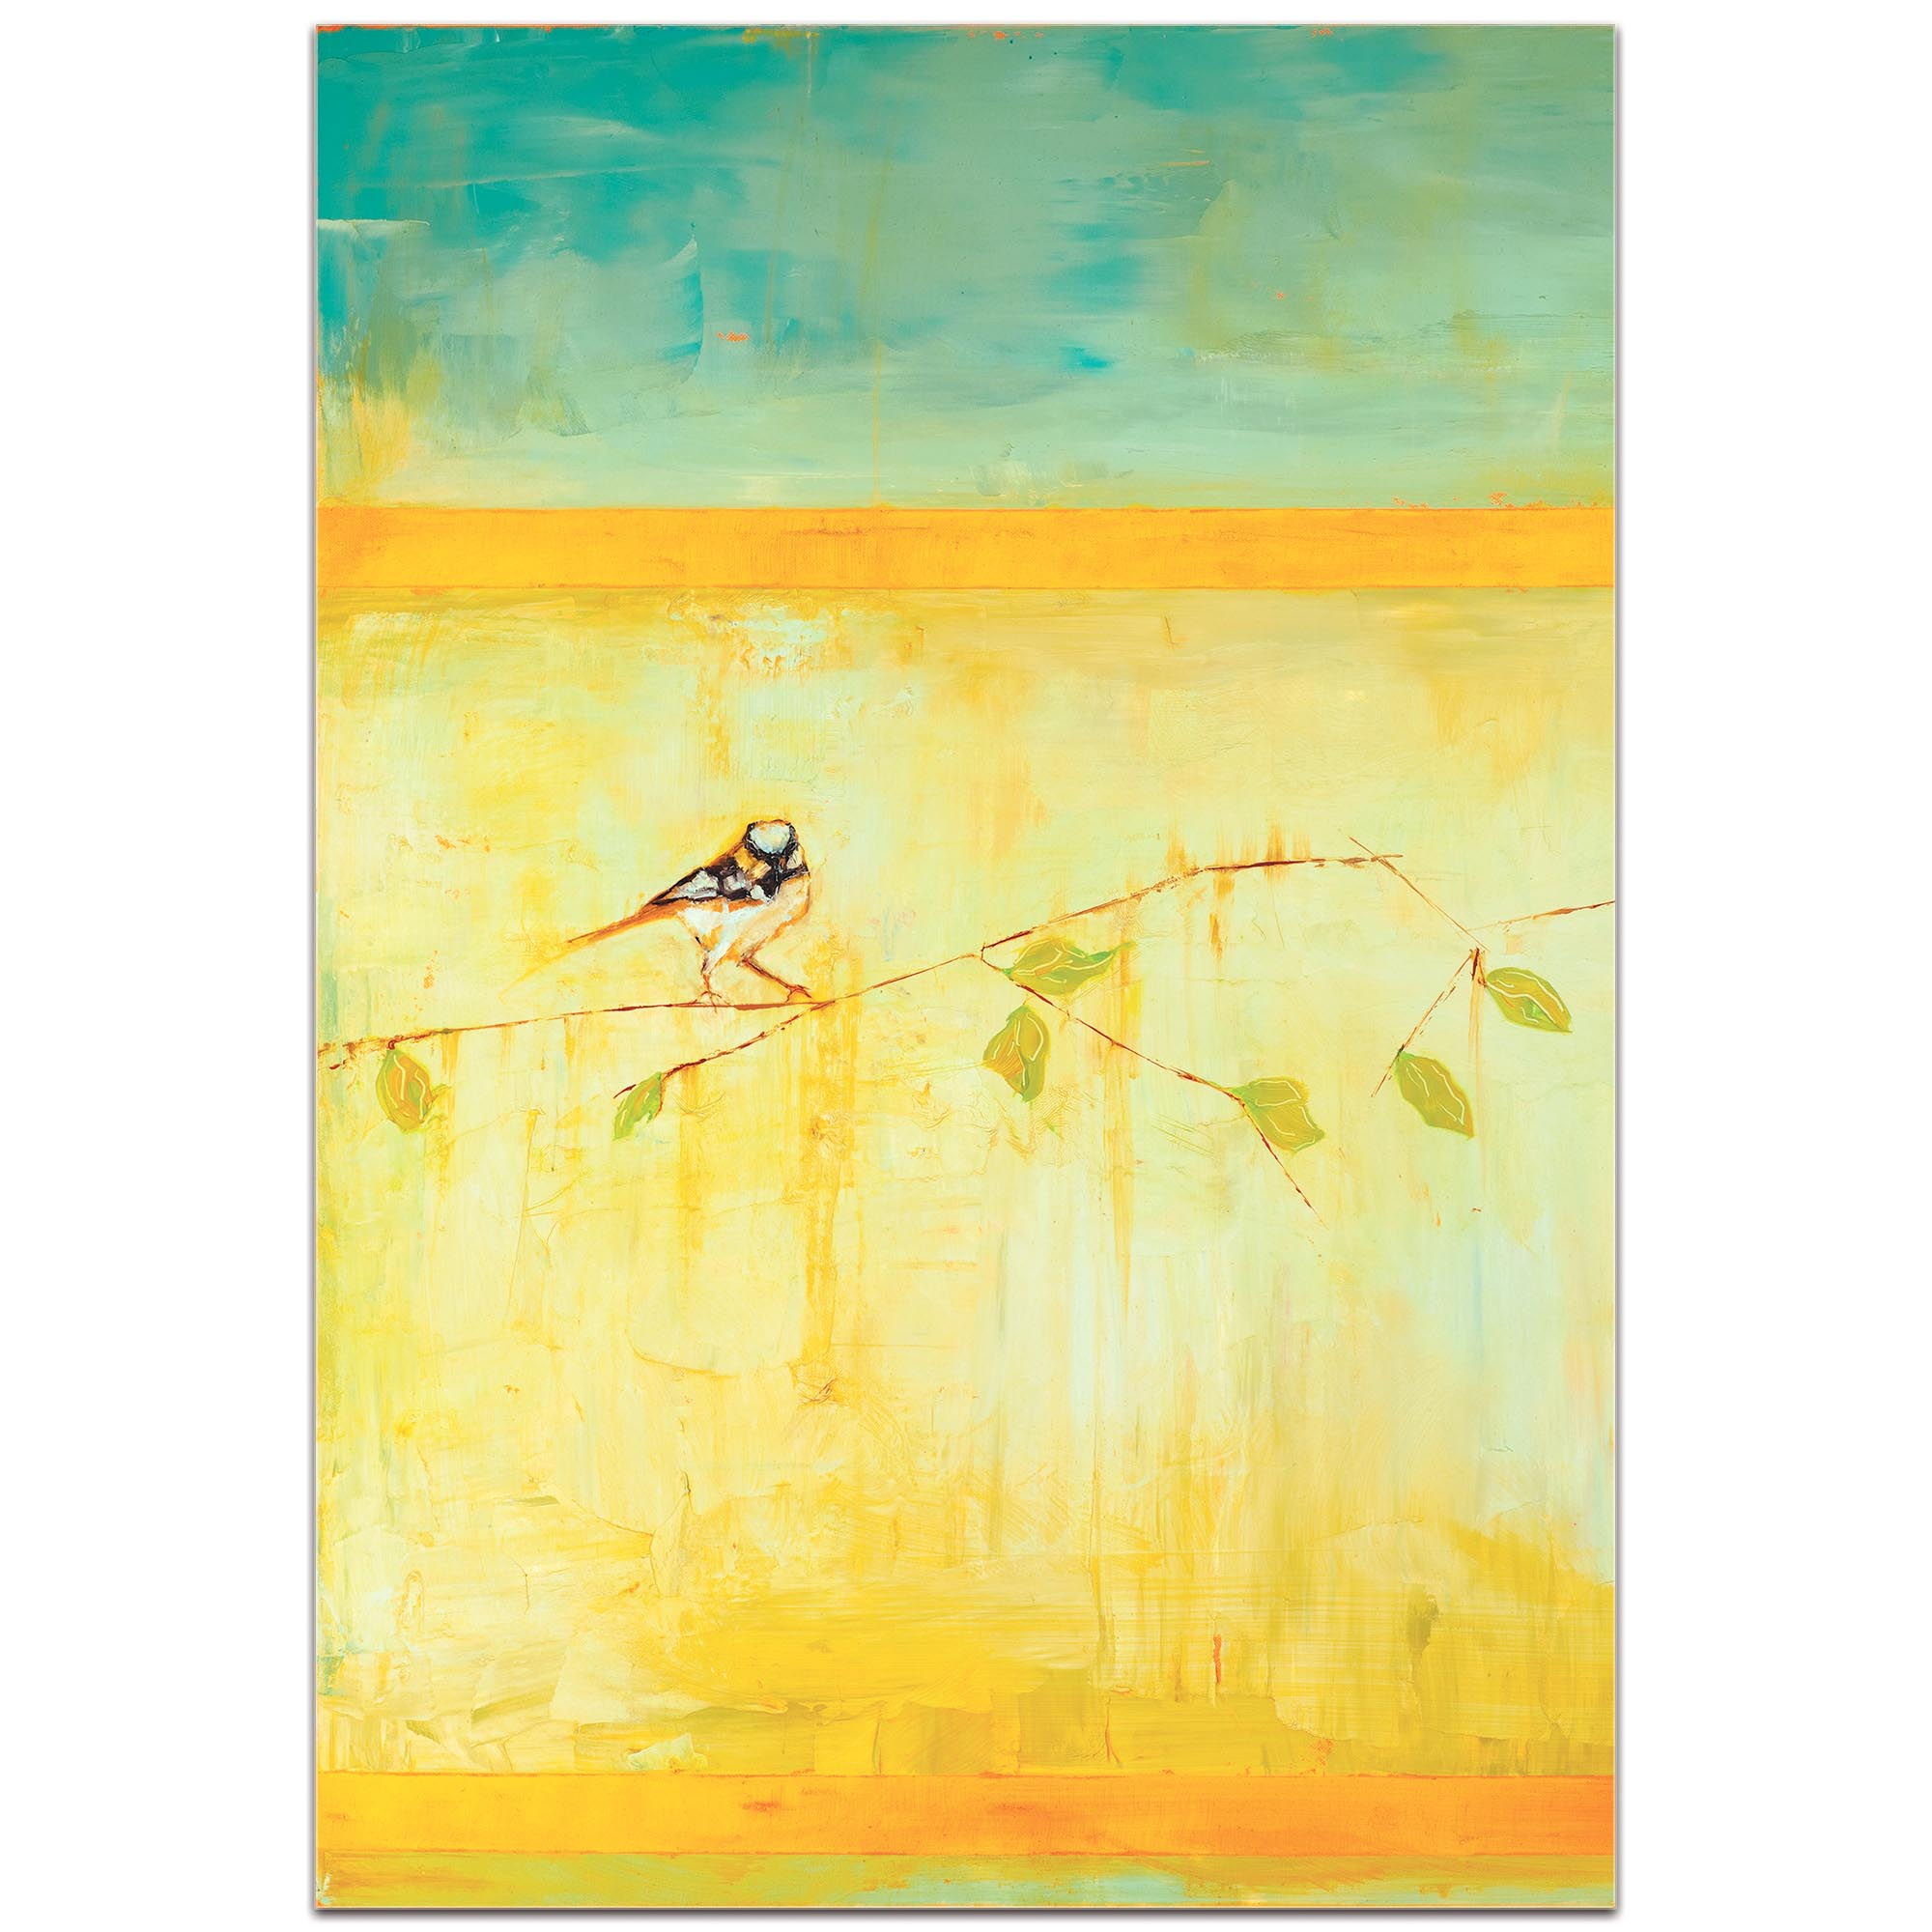 Contemporary Wall Art 'Bird with Horizontal Stripes v2' - Urban Birds Decor on Metal or Plexiglass - Image 2